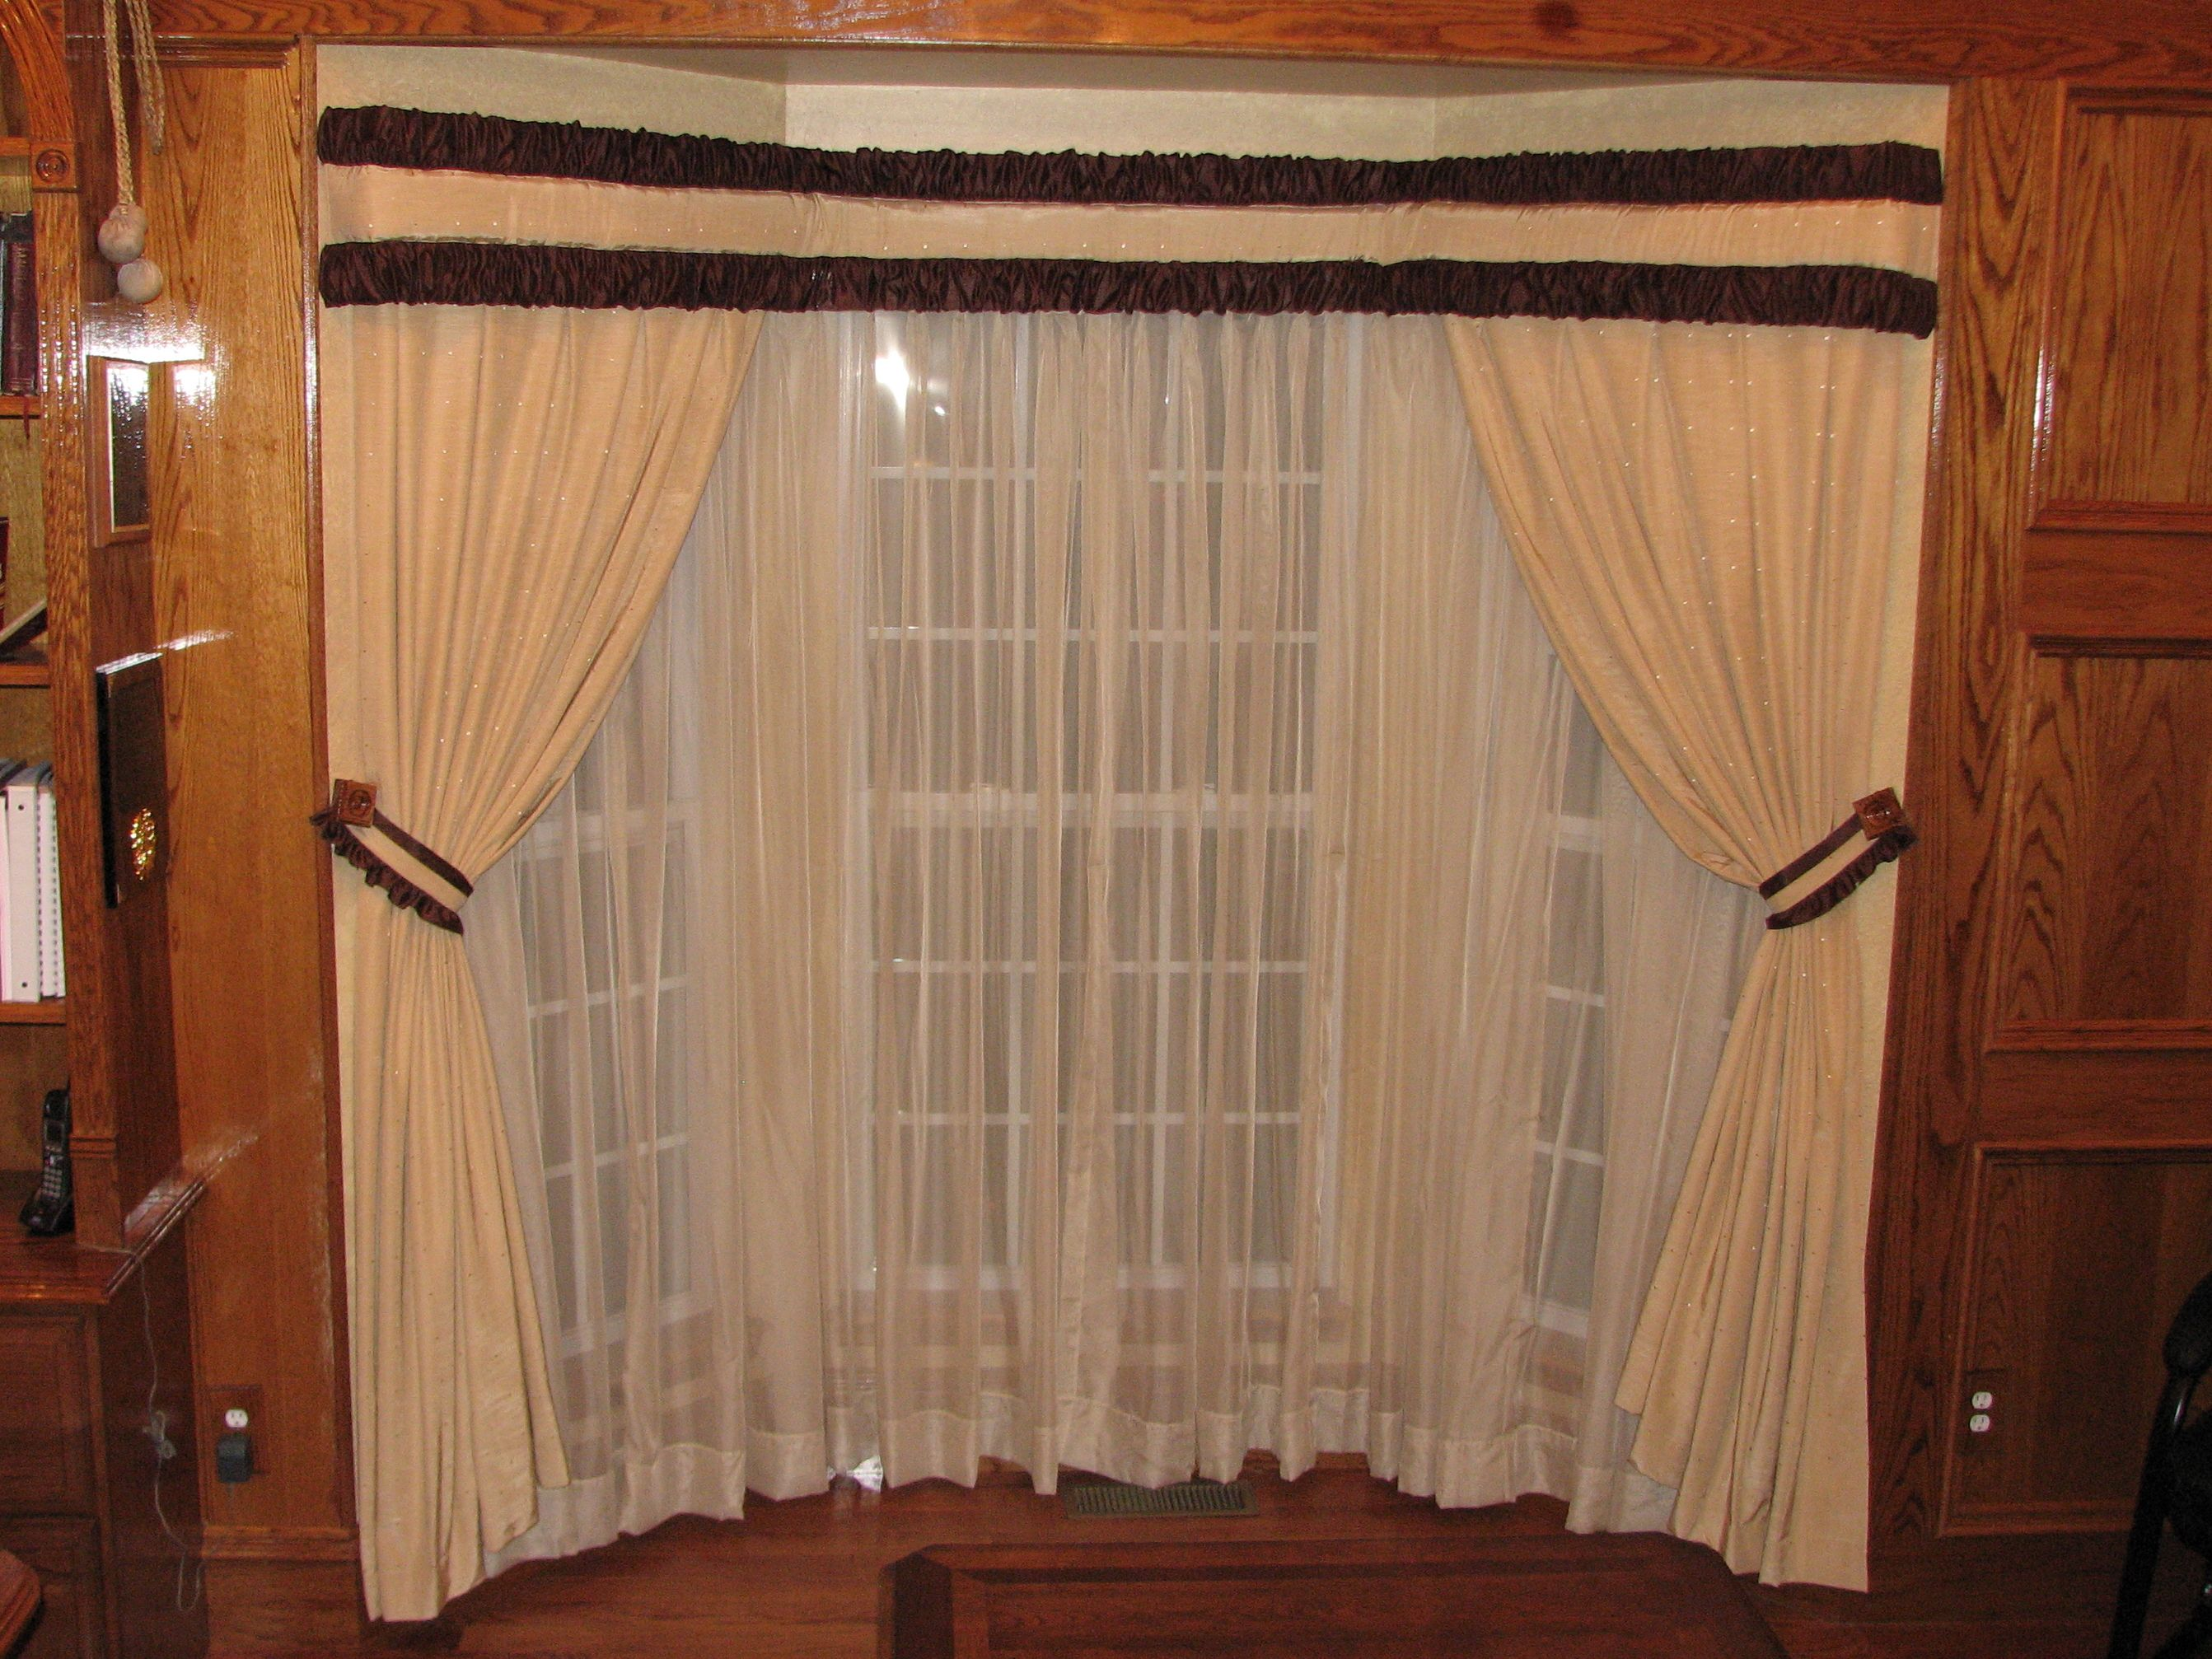 Back tab curtains on traverse rod - Bay Window Drapes Coordinated With Sheers On A Traverse Rod